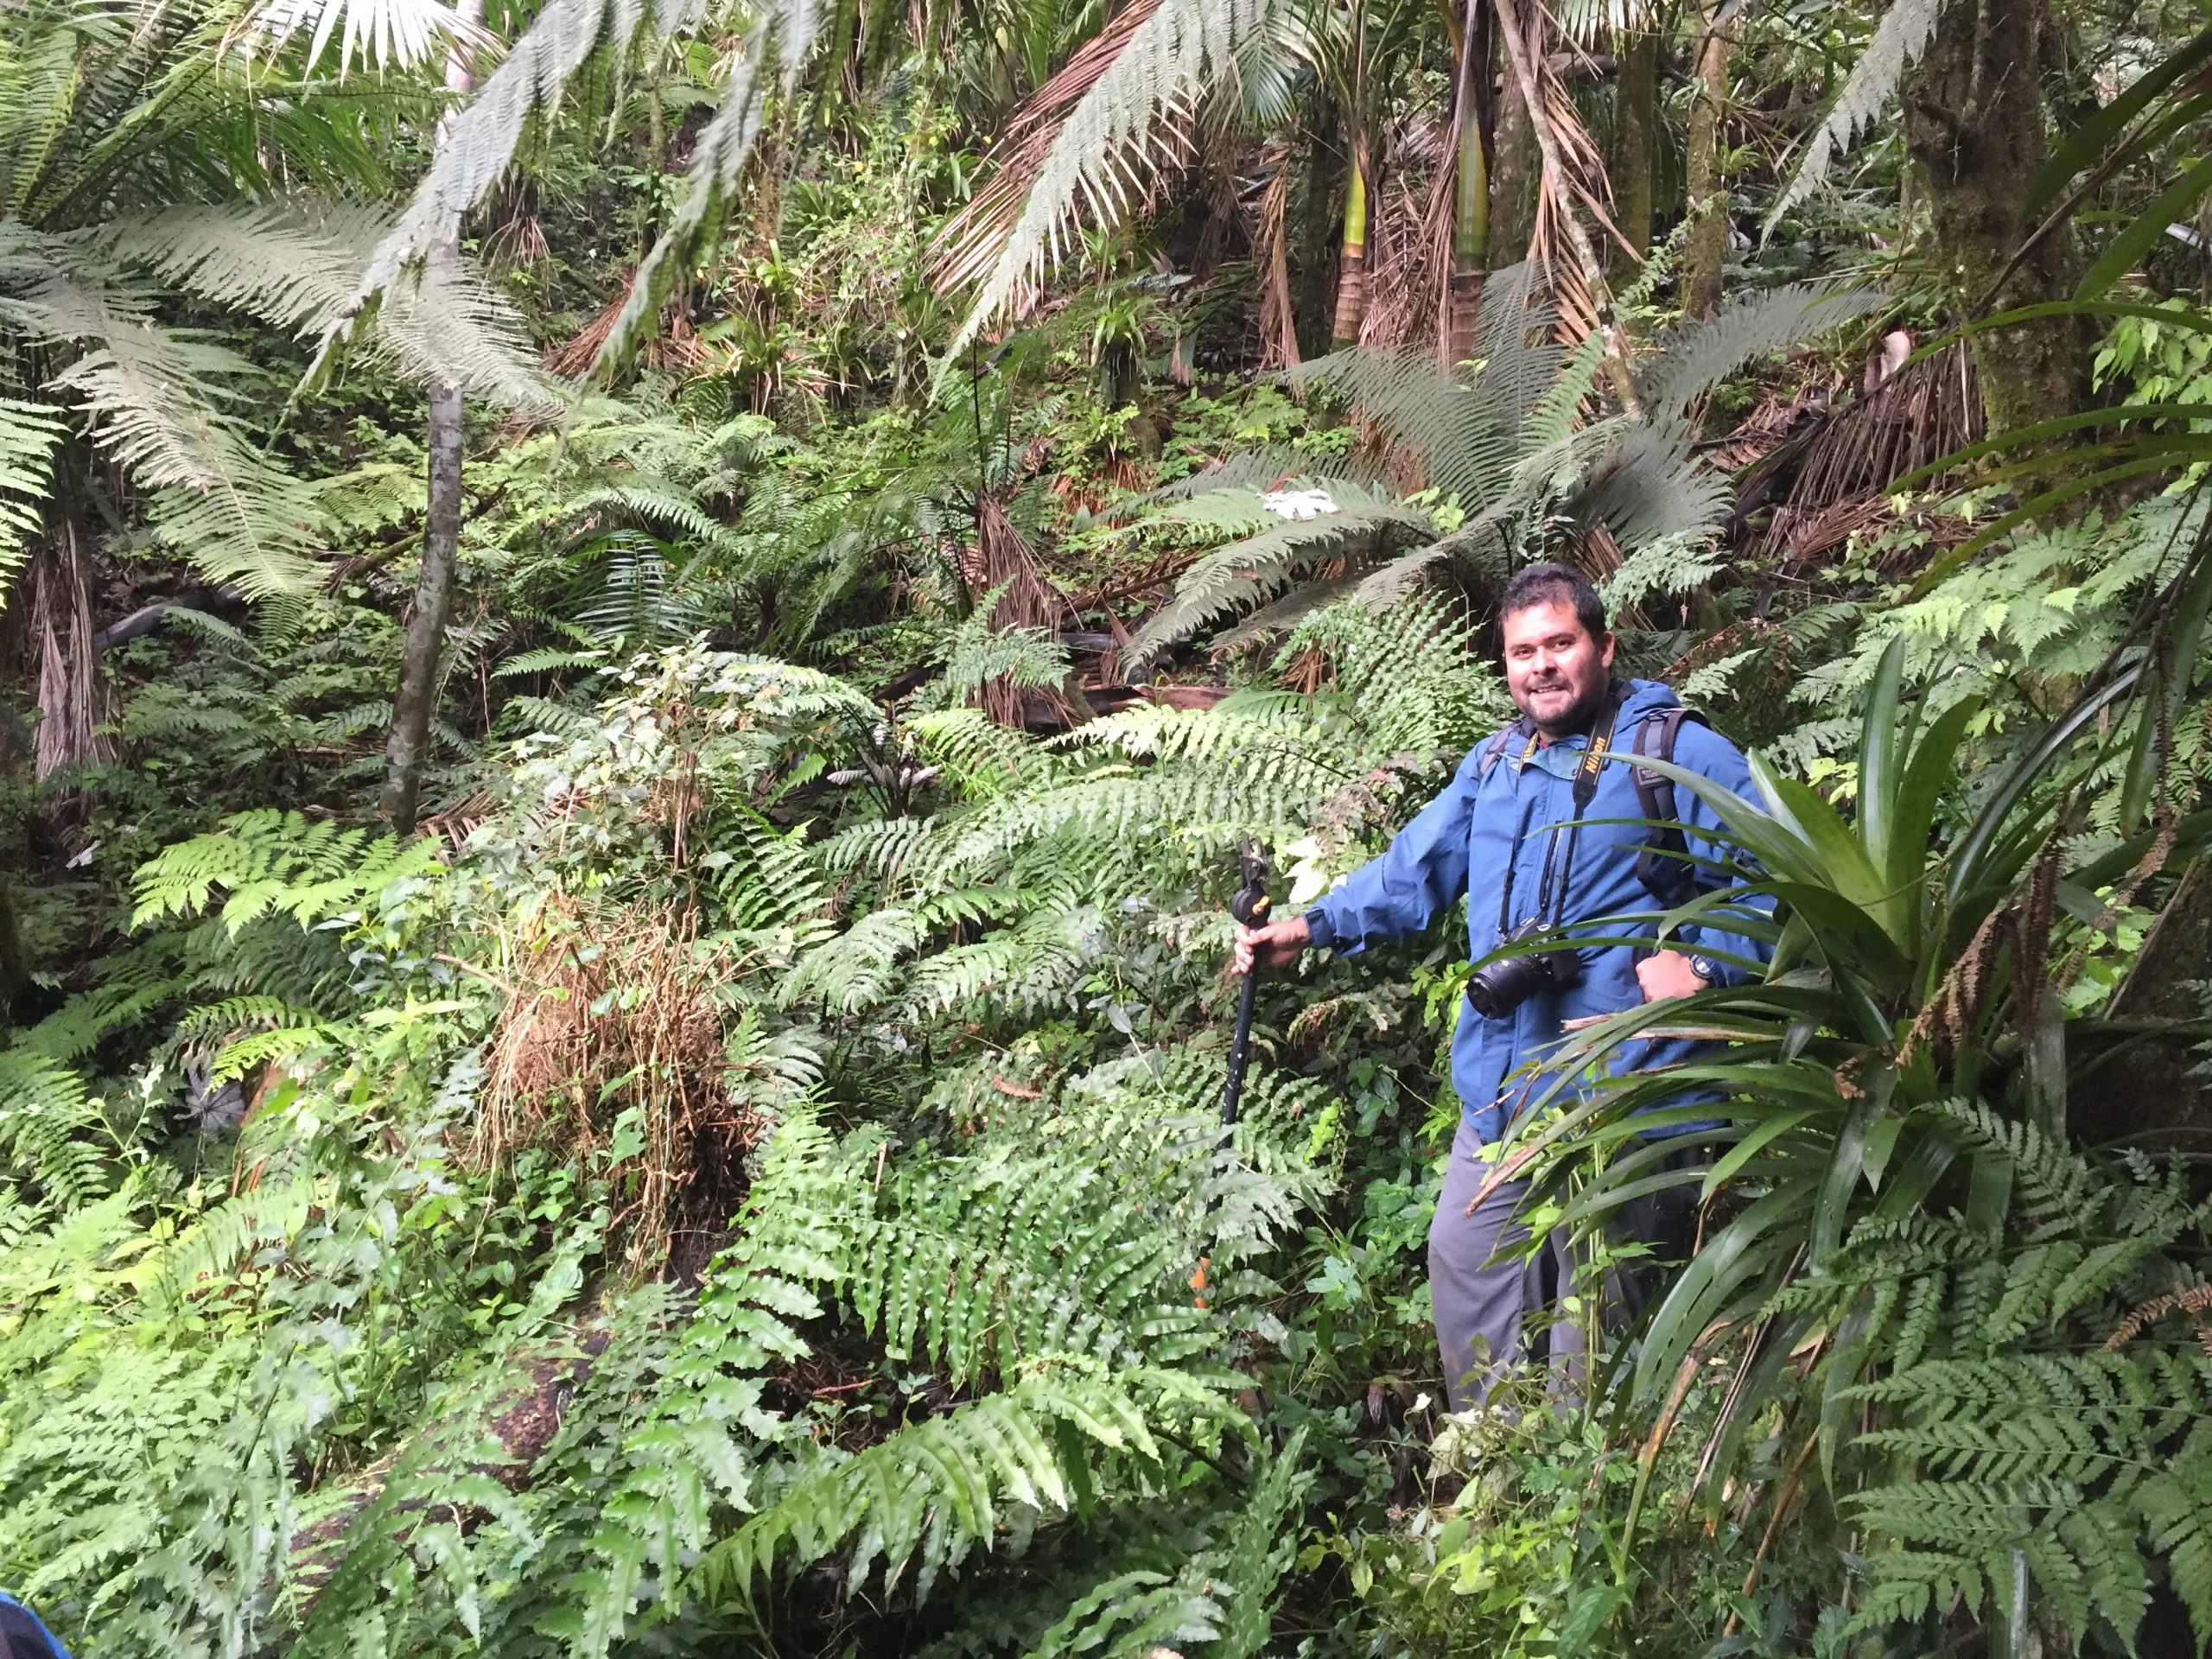 USFWS biologist Omar Monsegur-Rivera (this month's Conservation Champion), here in the newly discovered valley with dozens of Cyathea dryopteroides, was instrumental in the realization of this collaborative project.